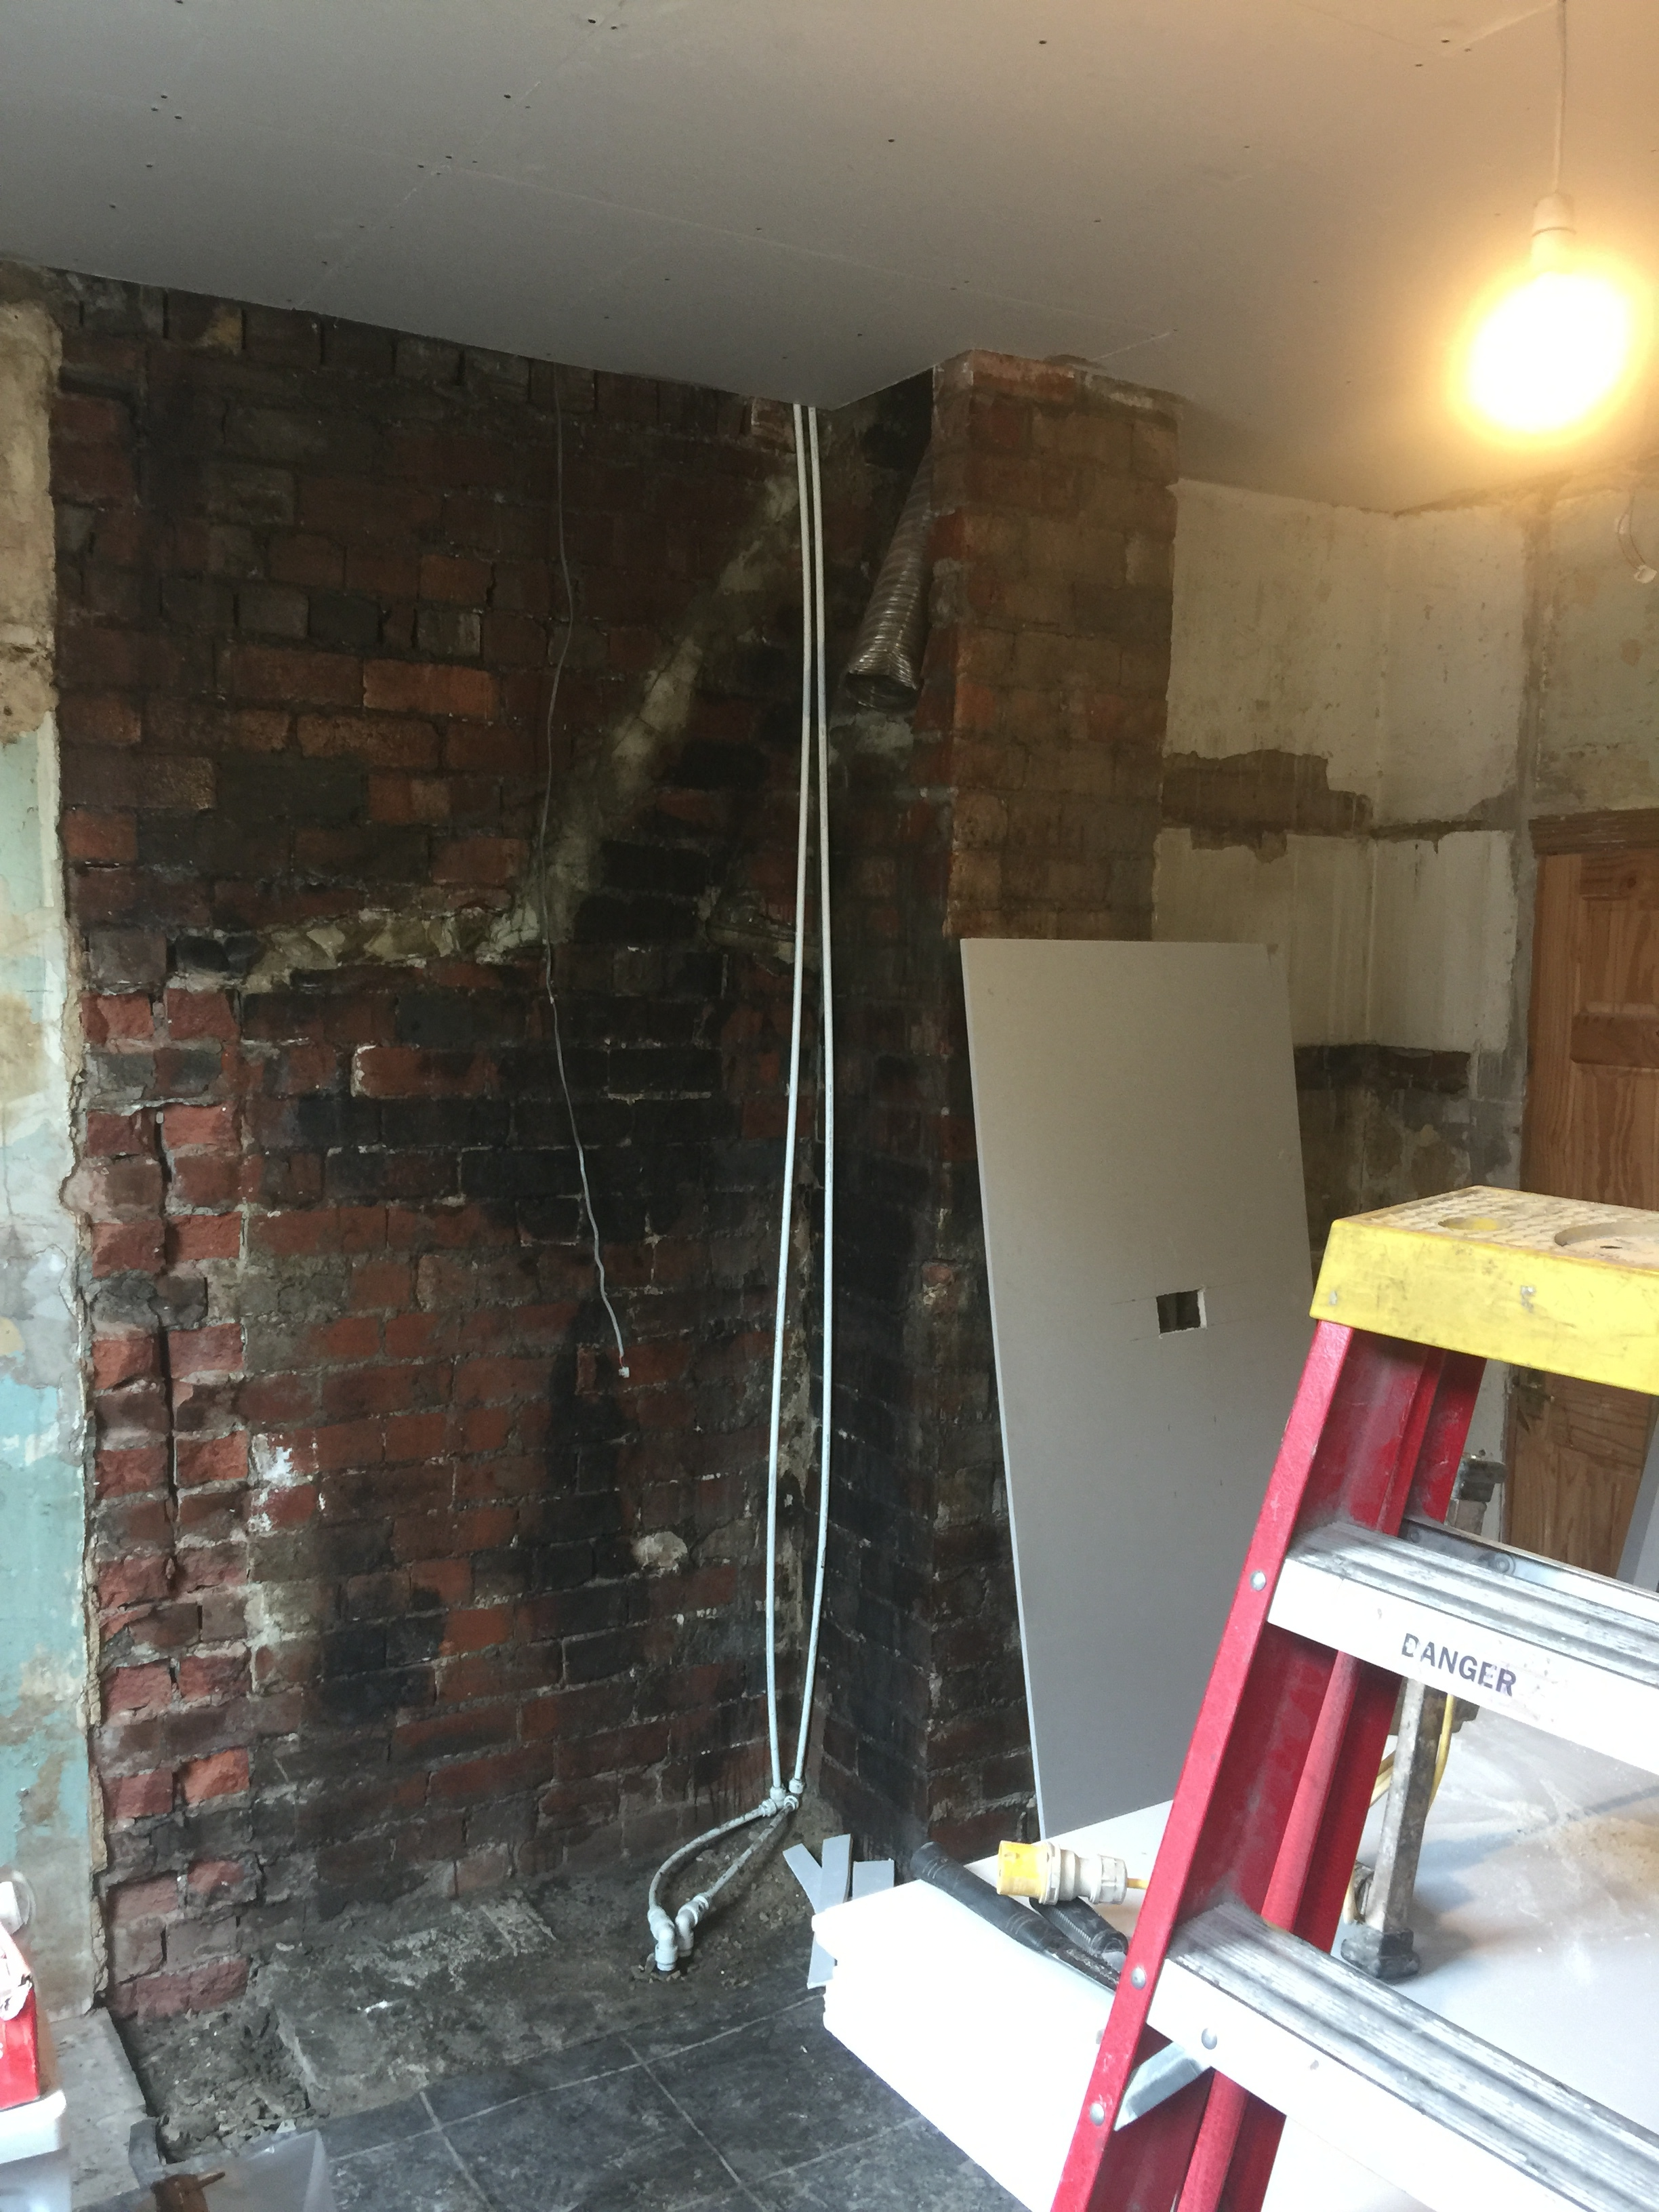 Chimney breasts removed - To create extra space and change layouts